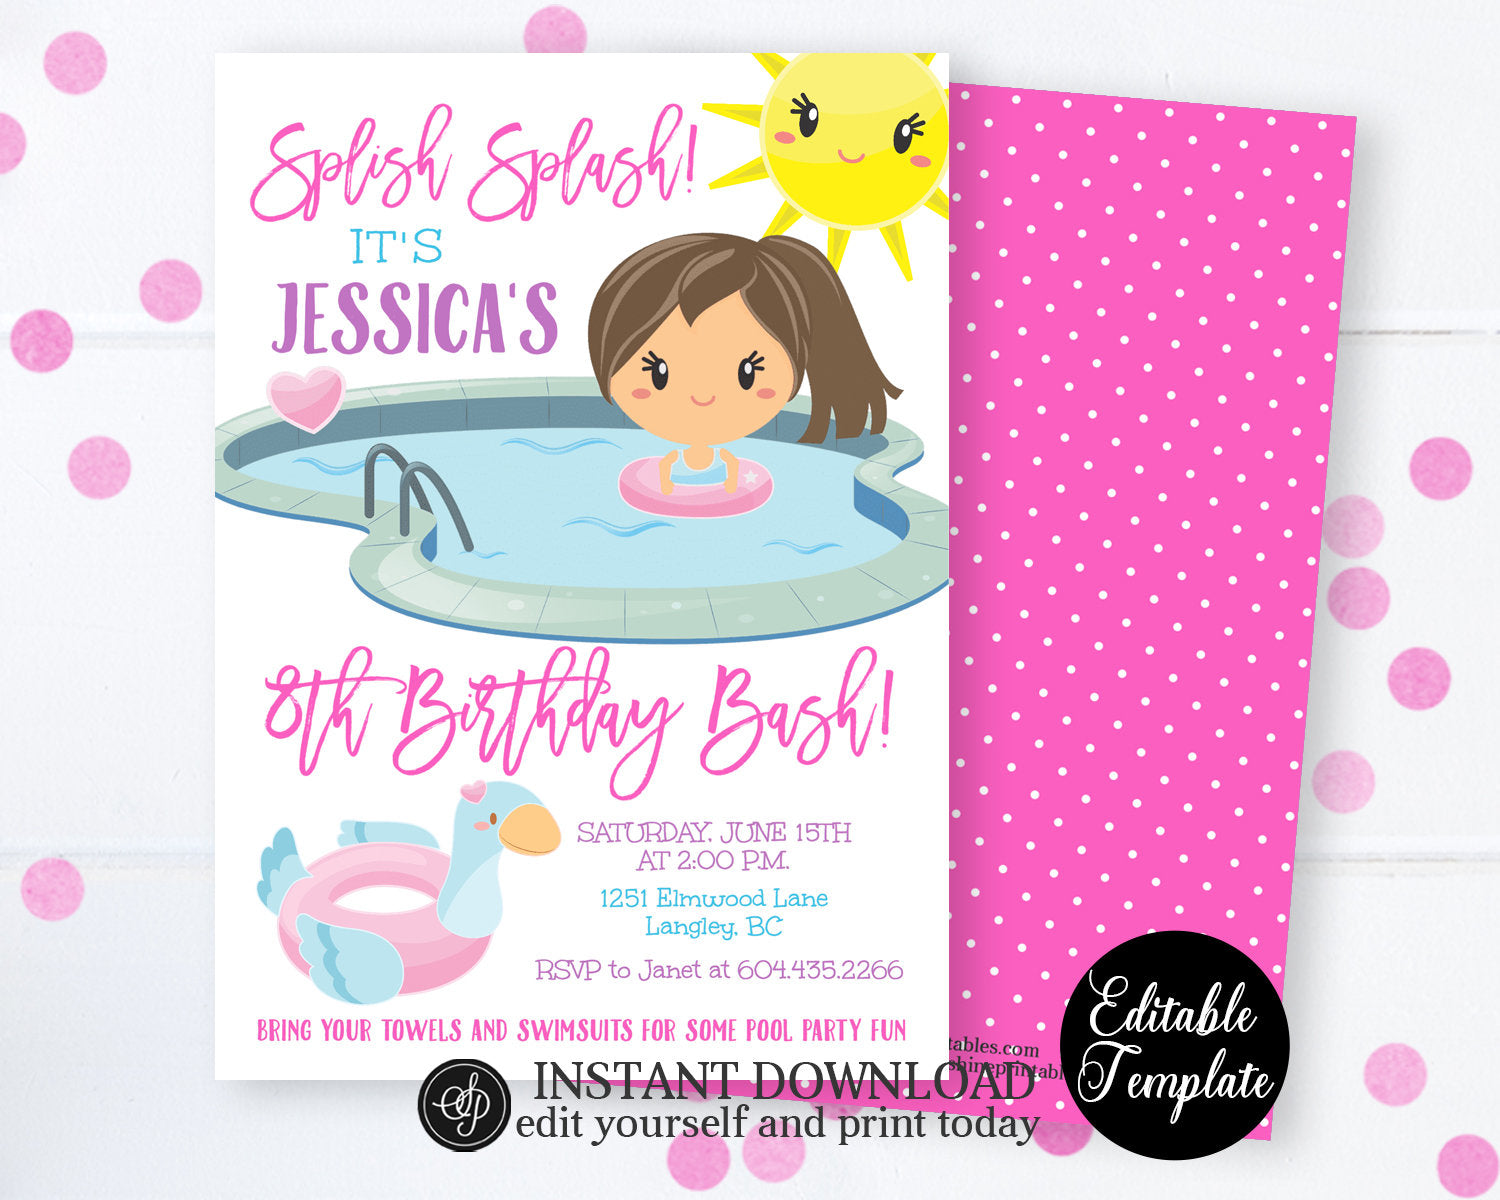 photograph relating to Printable Birthday Invitations for Girl titled Splish Splash Birthday Social gathering Pool Get together Invitation, Lady Swimming Birthday Invitation, Printable EDITABLE Template, Fast Attain SP0039